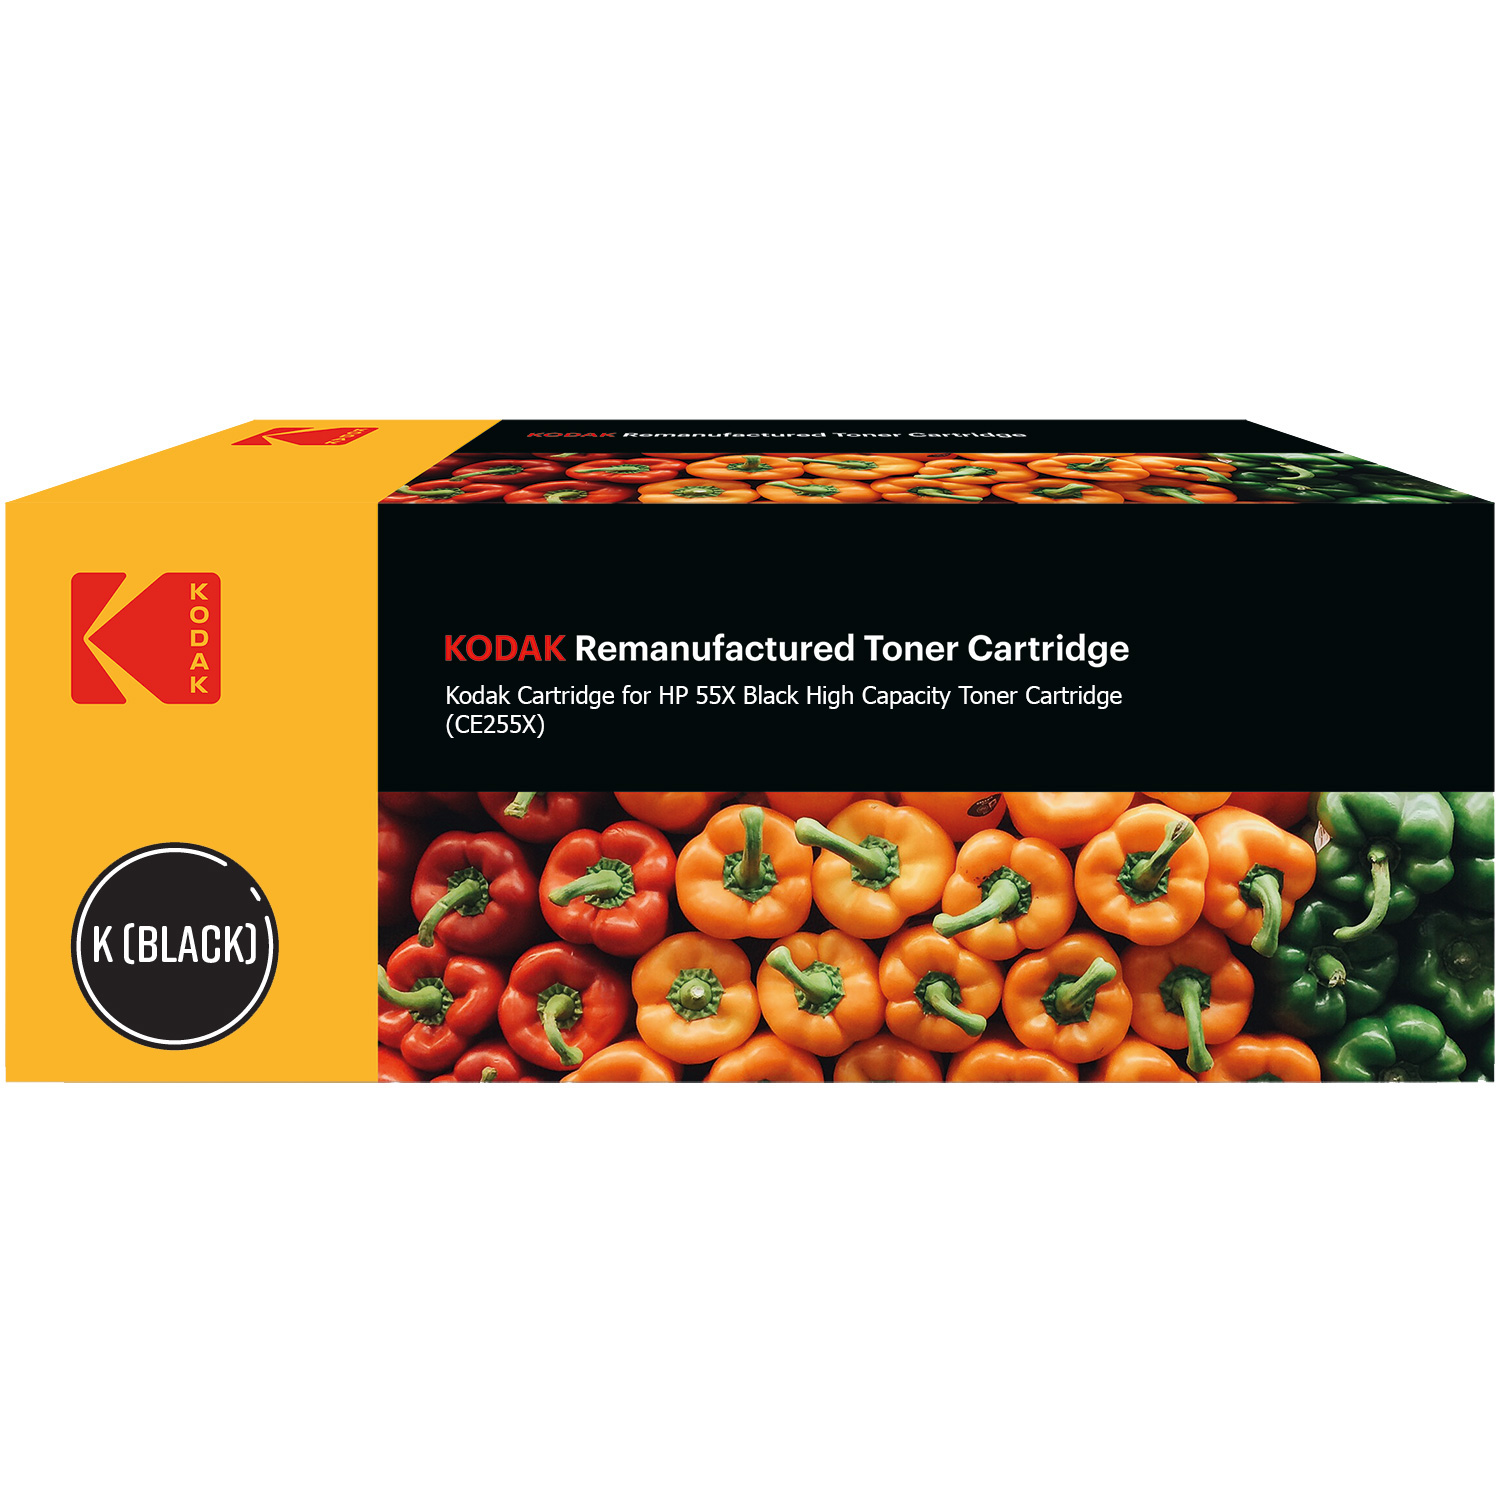 Ultimate HP 55X Black High Capacity Toner Cartridge (CE255X) (Kodak KODCE255X)